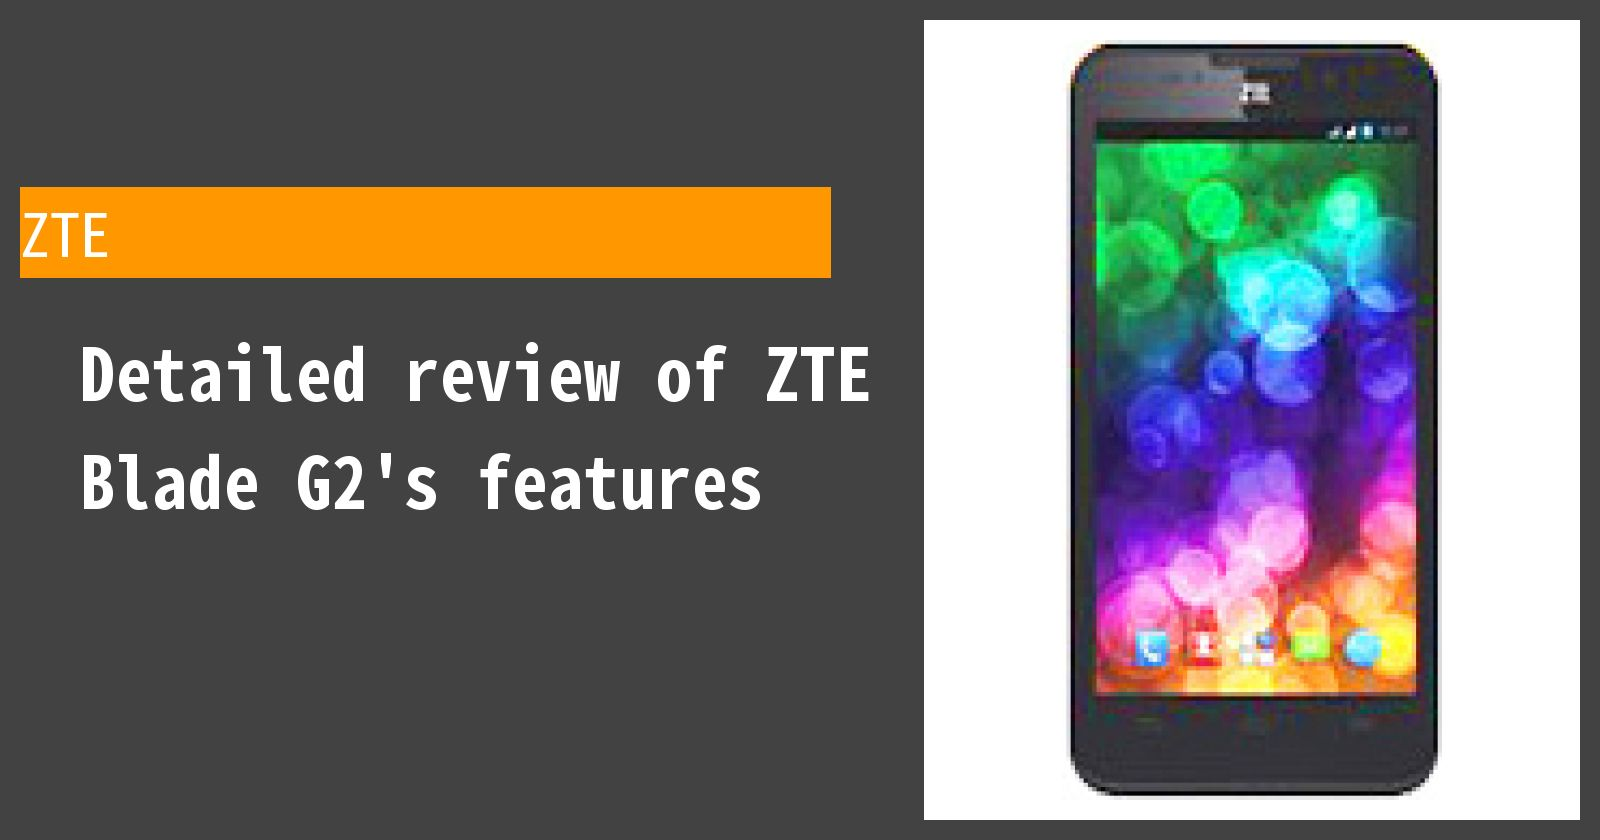 Detailed review of ZTE Blade G2's features